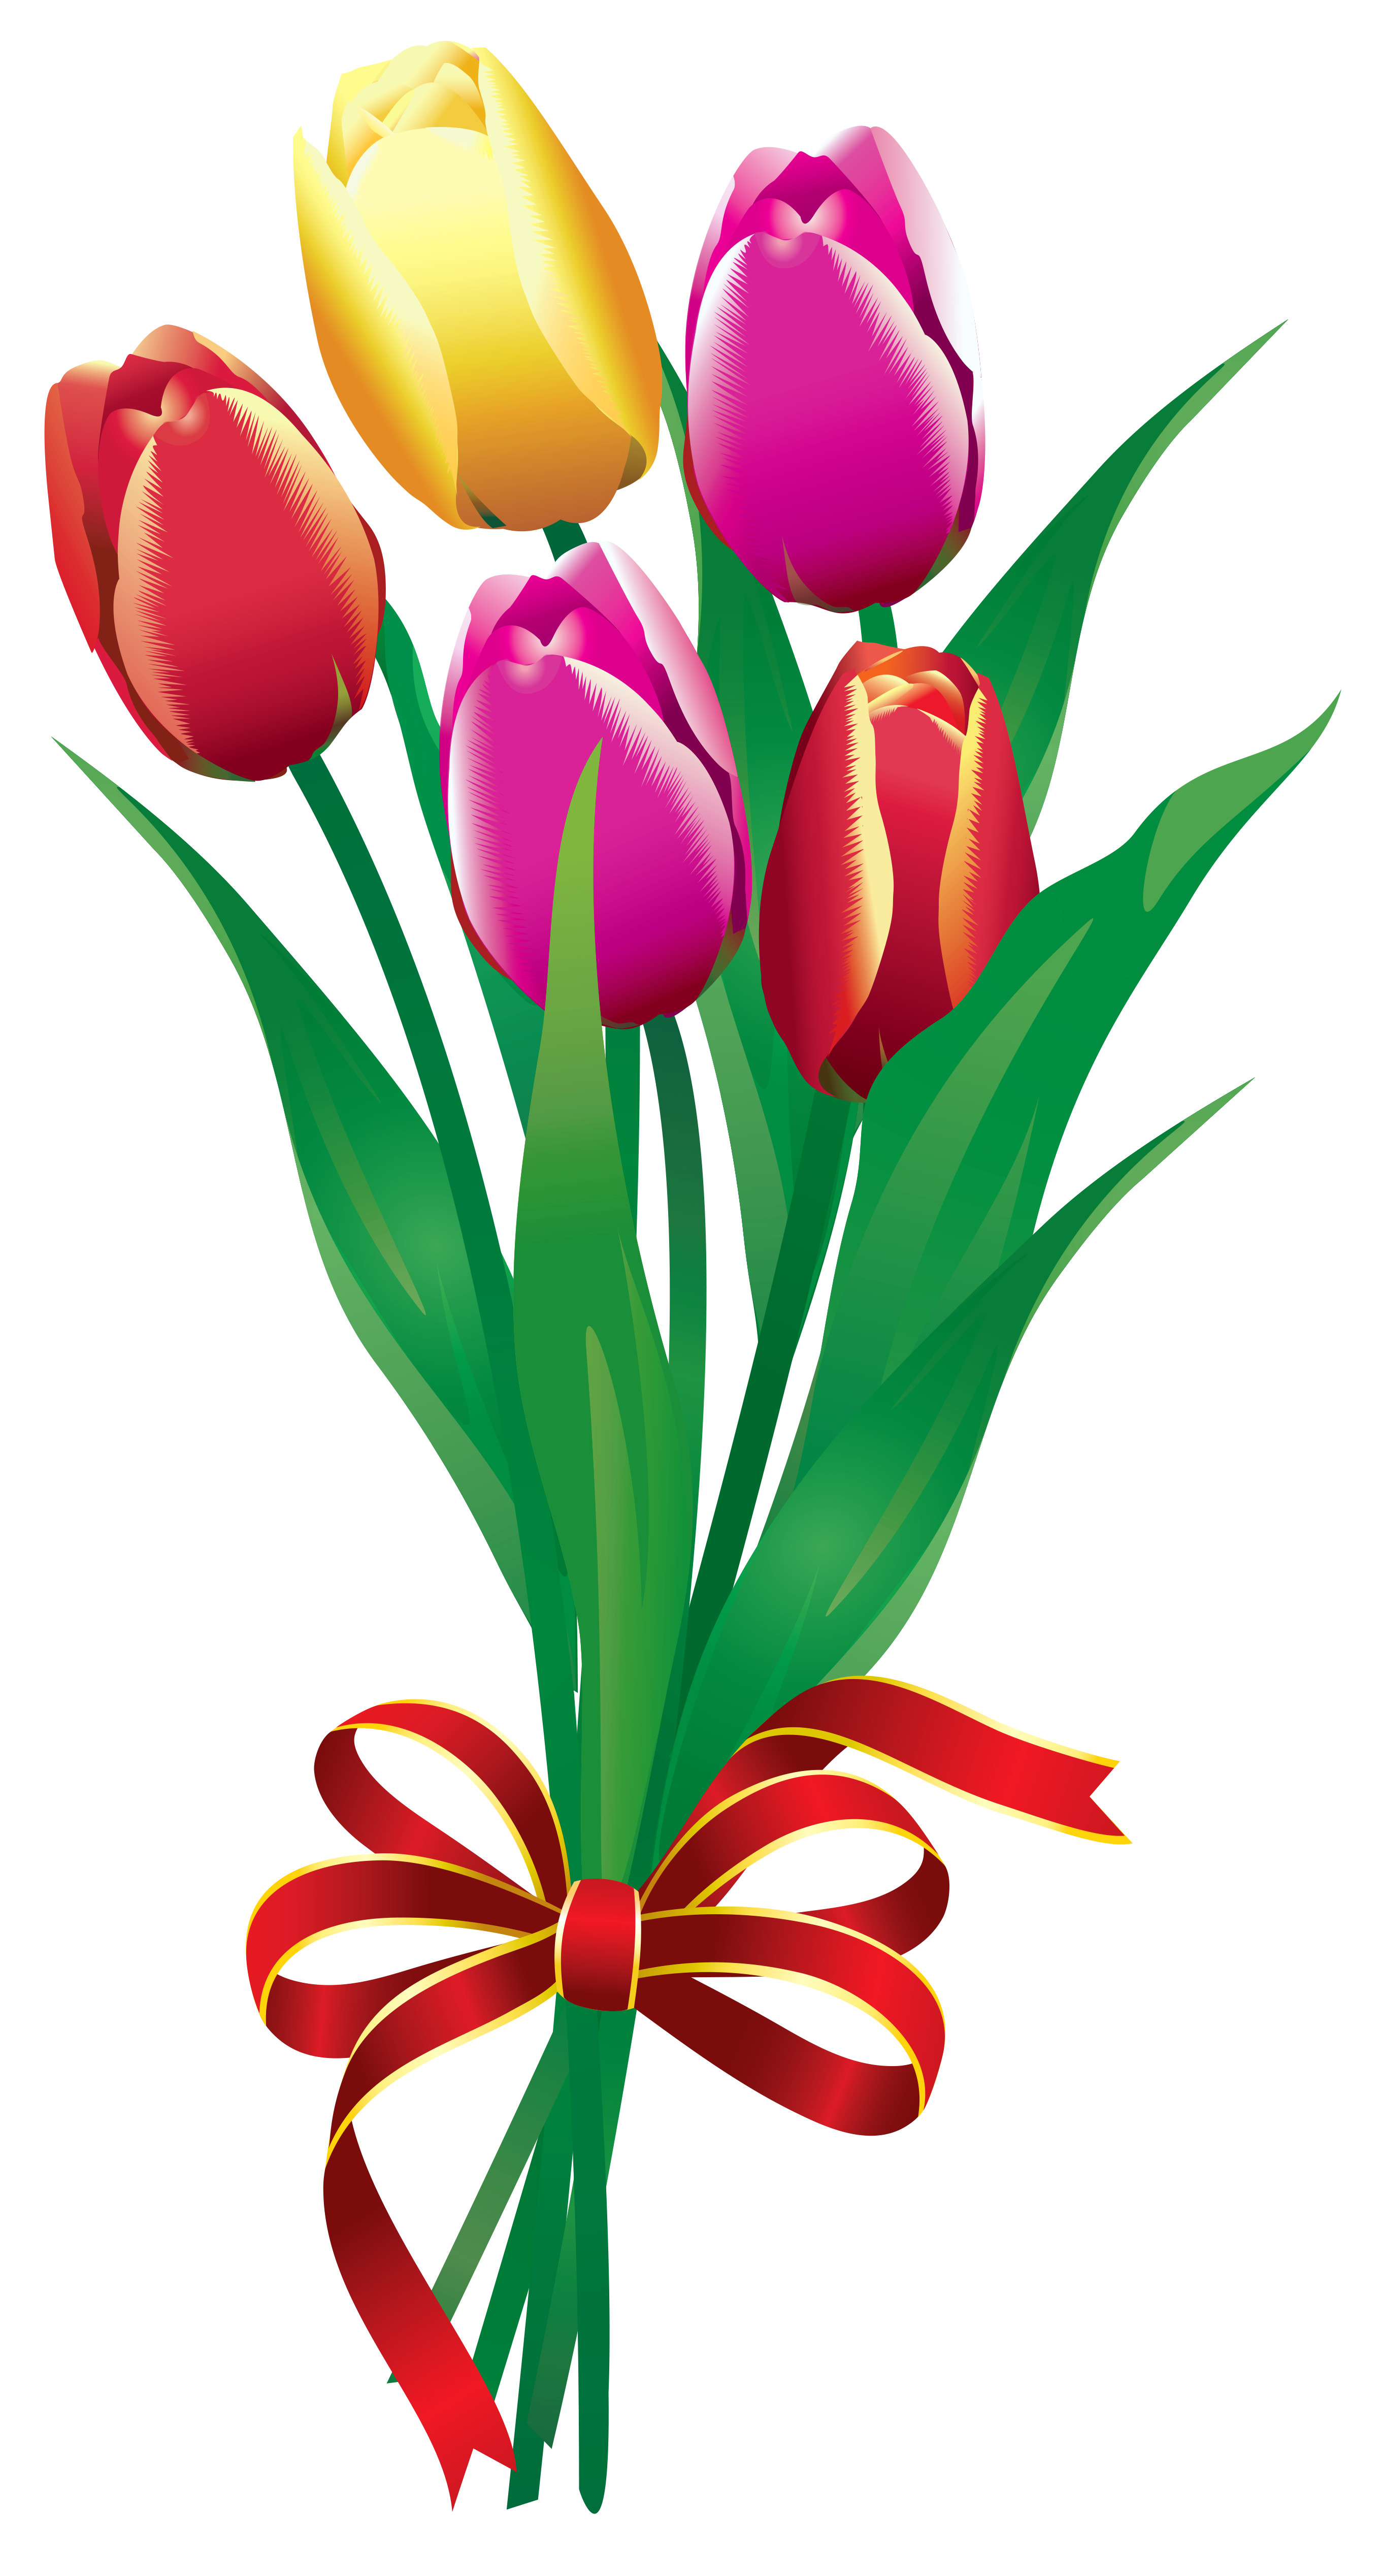 Spring tulips bouquet png. Clipart leaves tulip